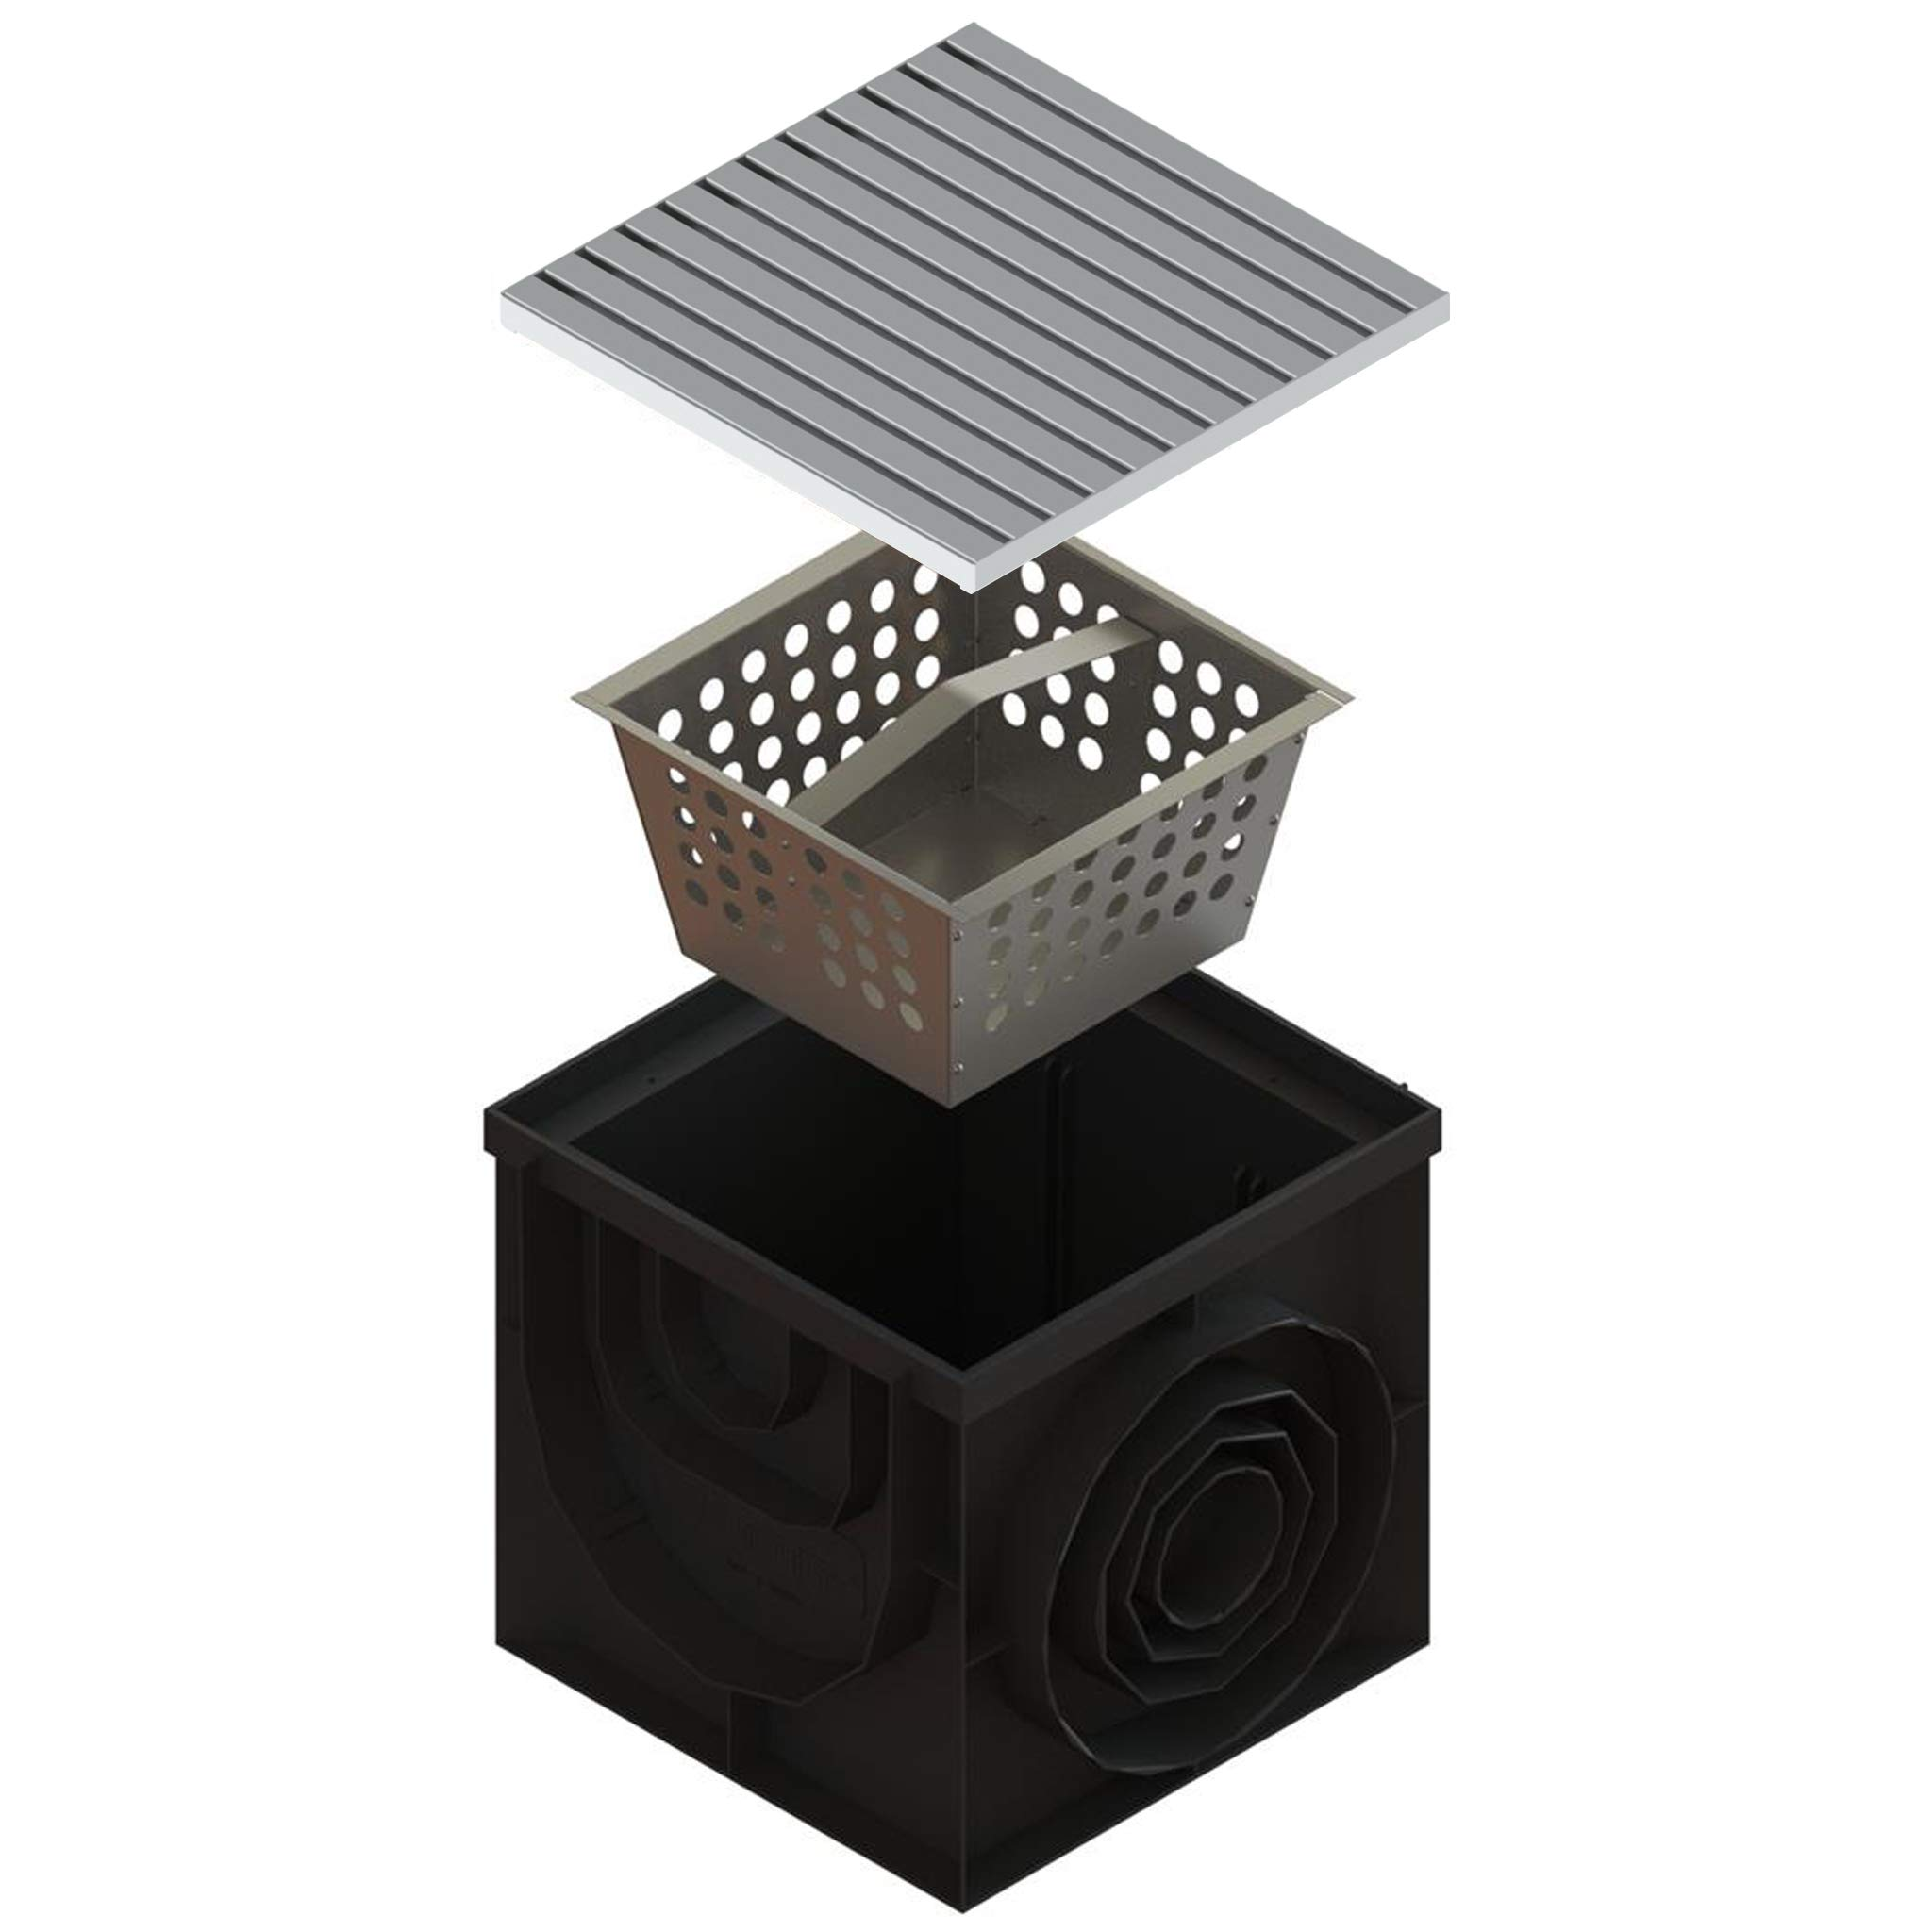 Standartpark - 16x16 Inch Catch Basin. PPE Plastic with 100% Stainless Steel - ADA/Heel Proof Grate and Sediment Basket Included.